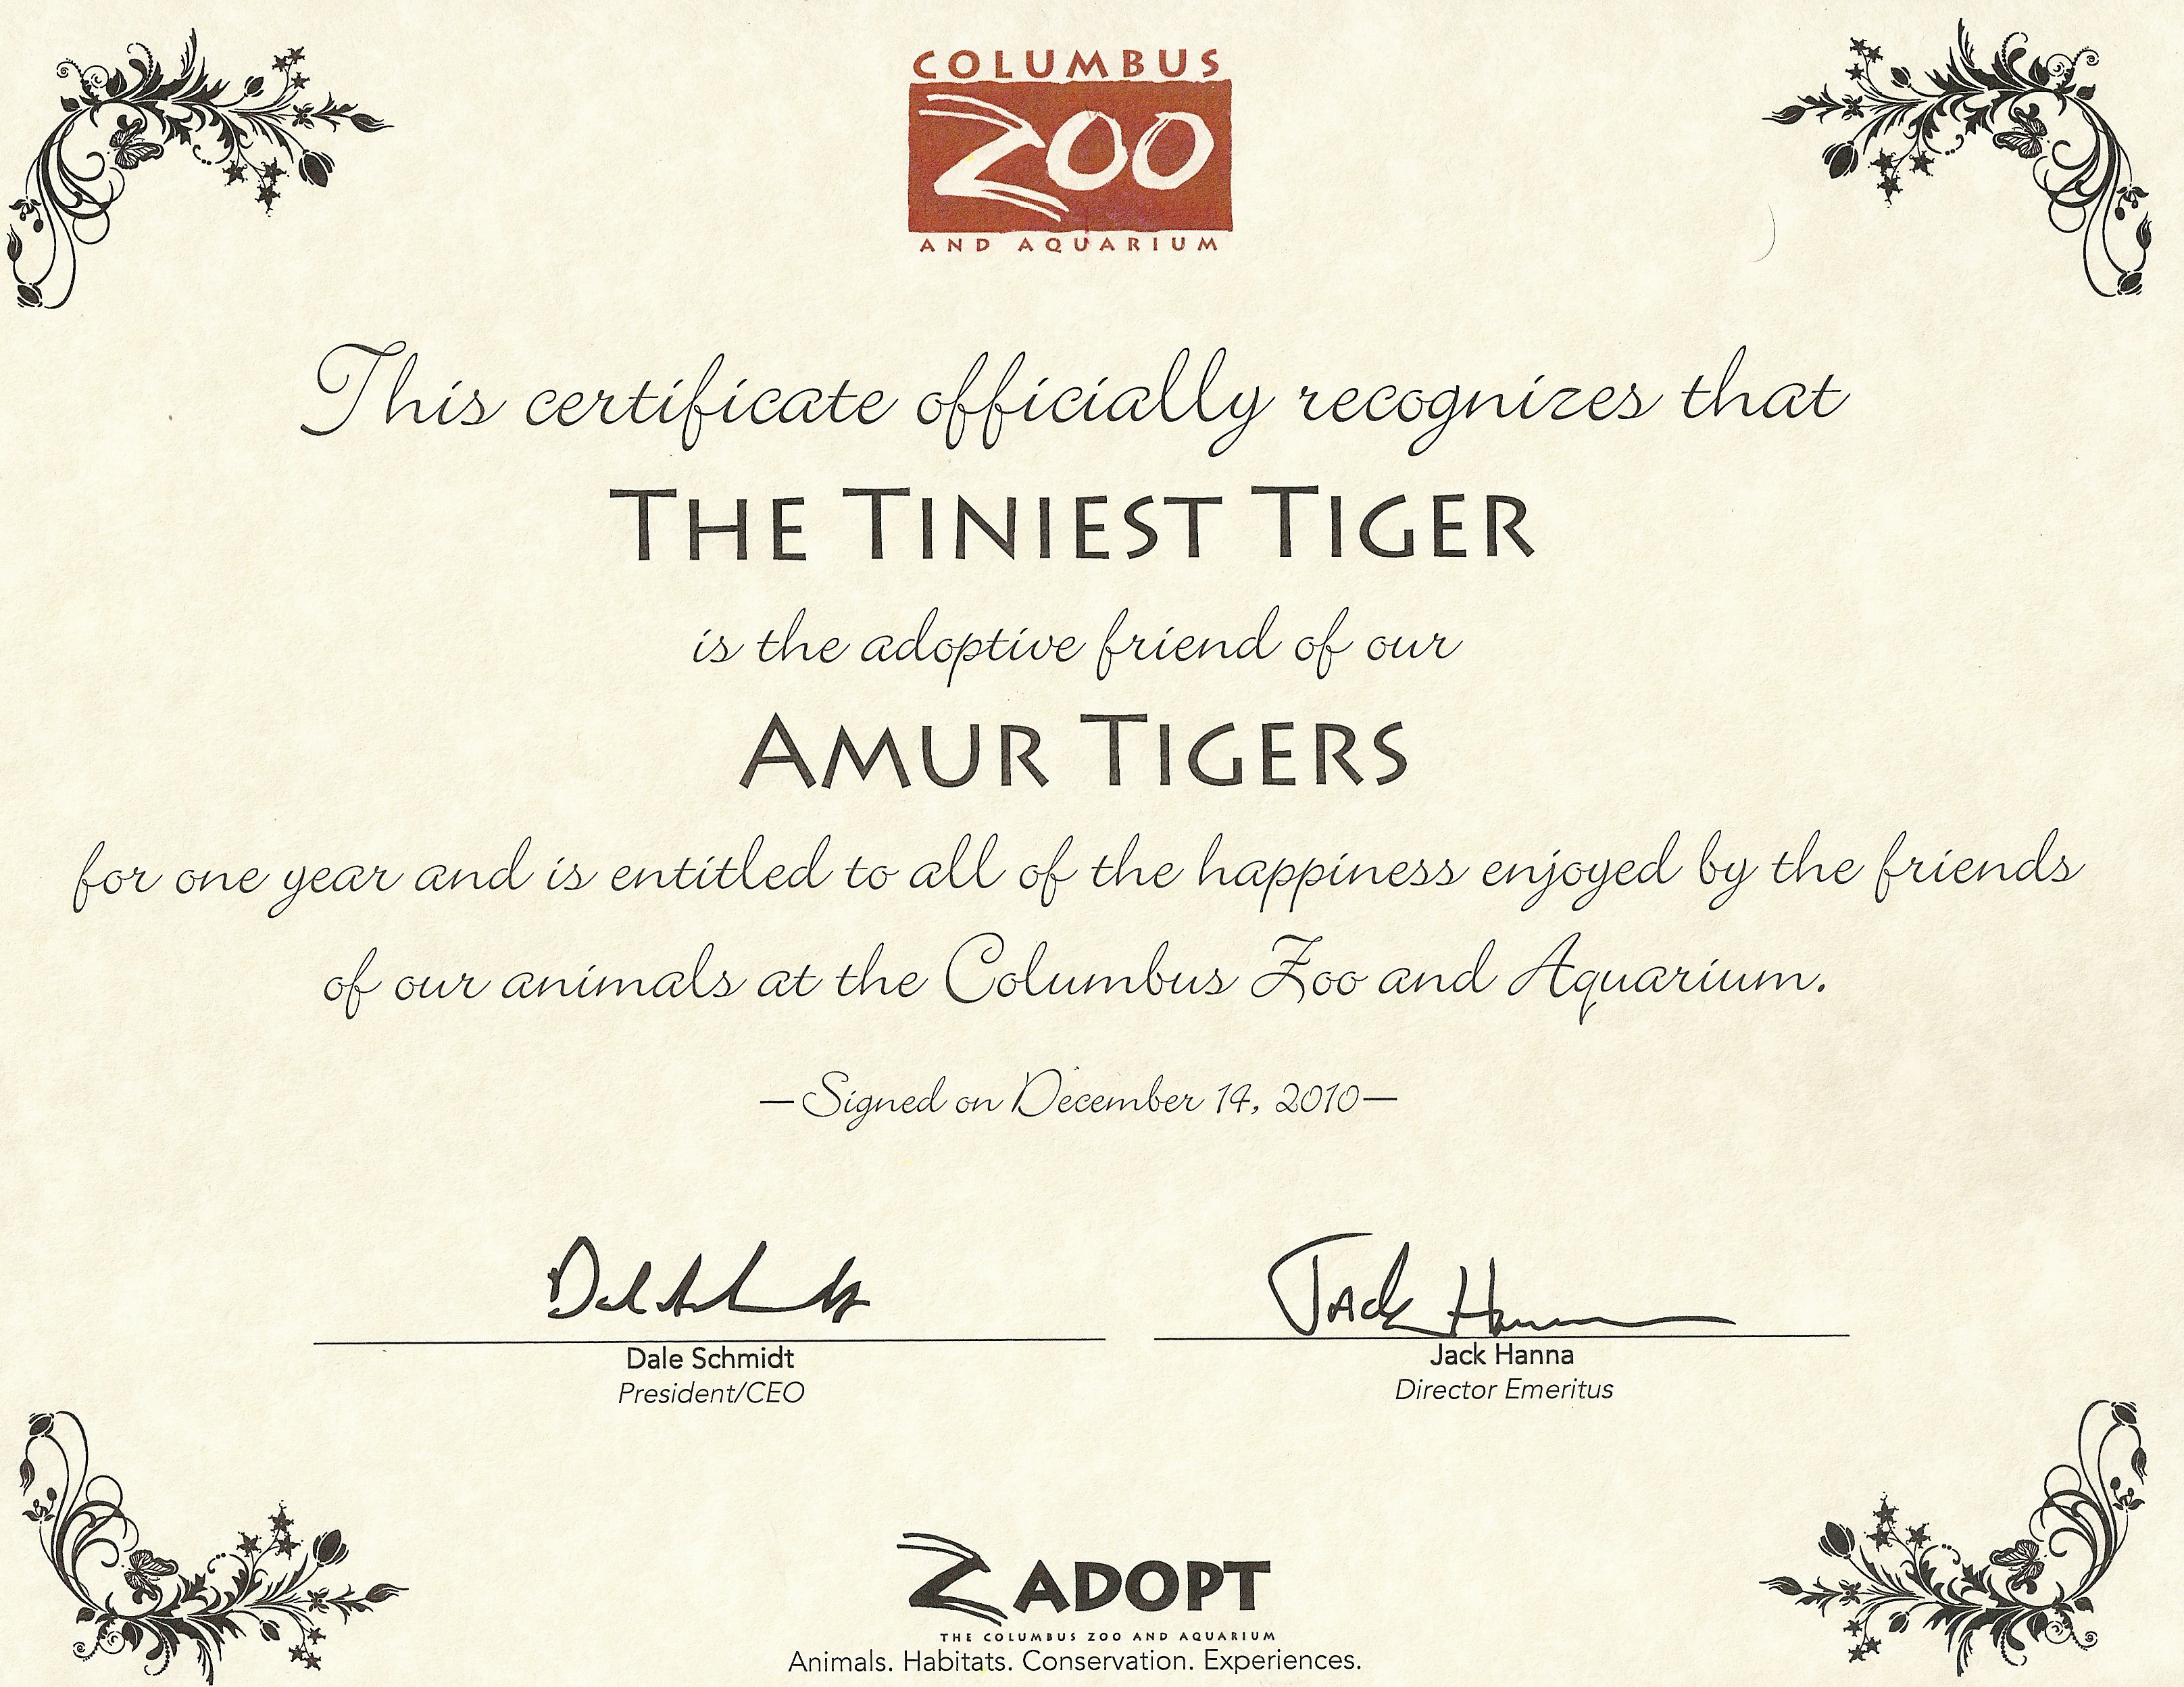 The Columbus Zoos Amur Tigers The Tiniest Tiger The Tiniest Tiger